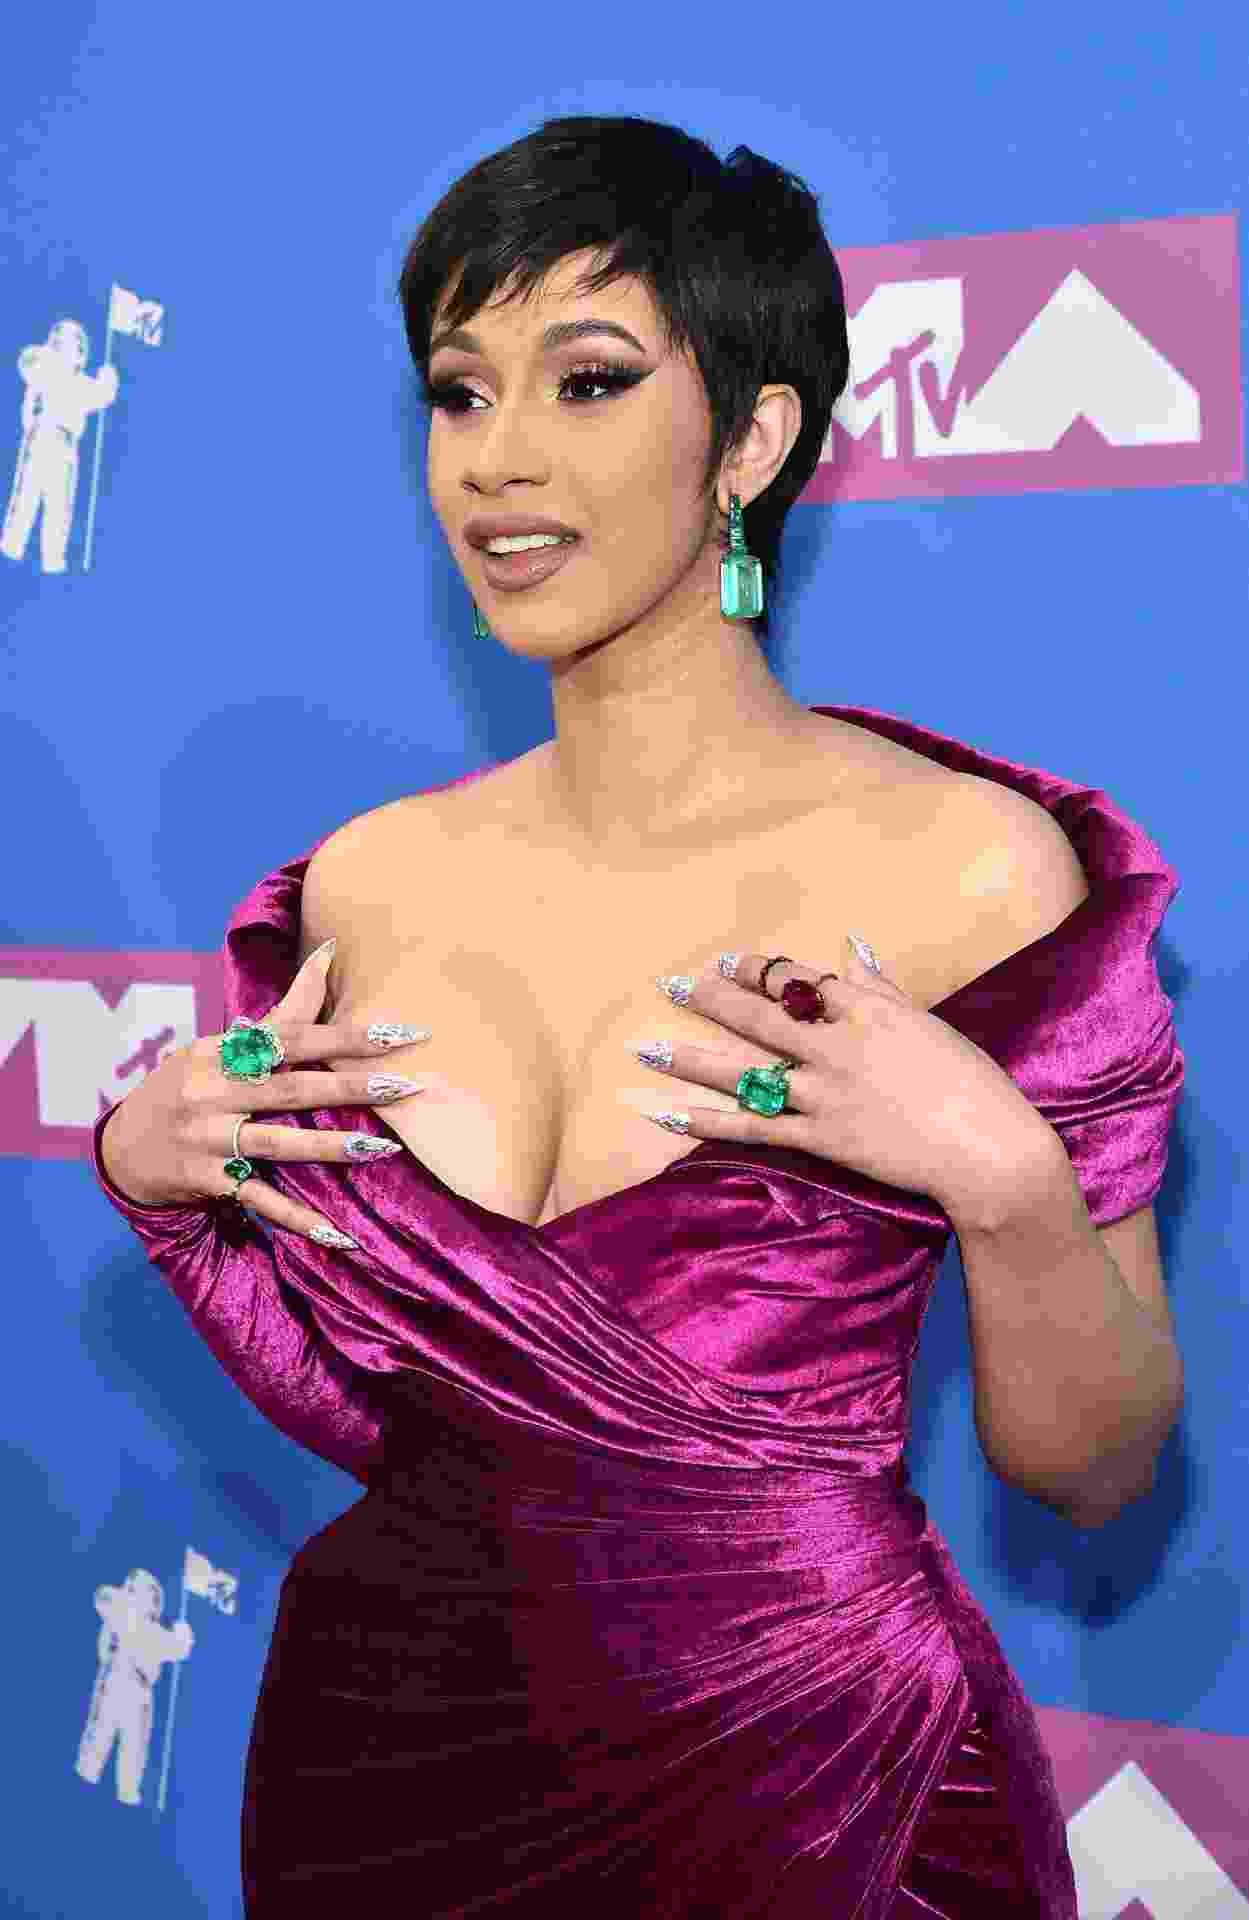 A rapper Cardi B no tapete pink do VMA 2018, em Nova York - Mike Coppola/Getty Images for MTV